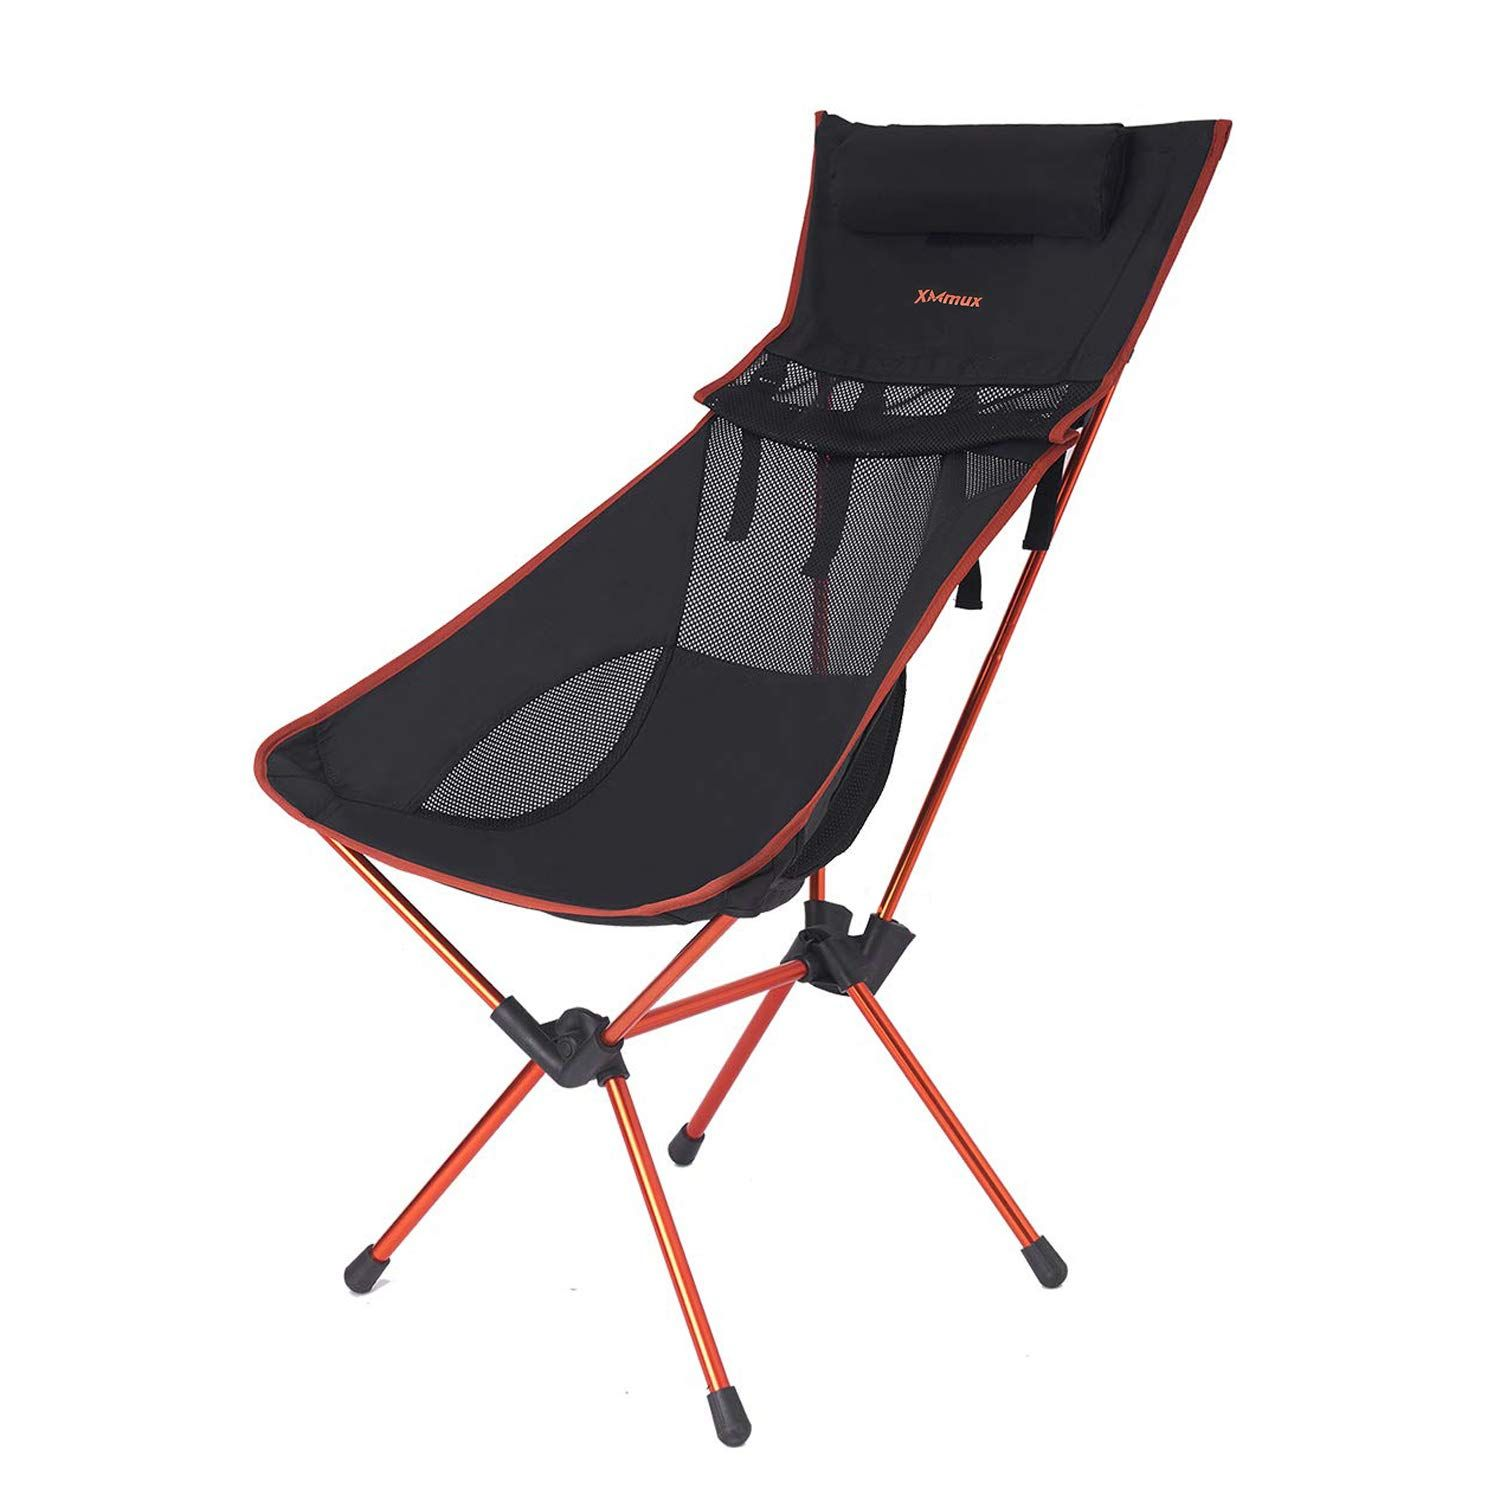 Xmmux Lightweight Folding Back Camping Chair With Headrest Portable Compact For Outdoor Camp Travel P Camping Chair Folding Camping Chairs Camping Furniture